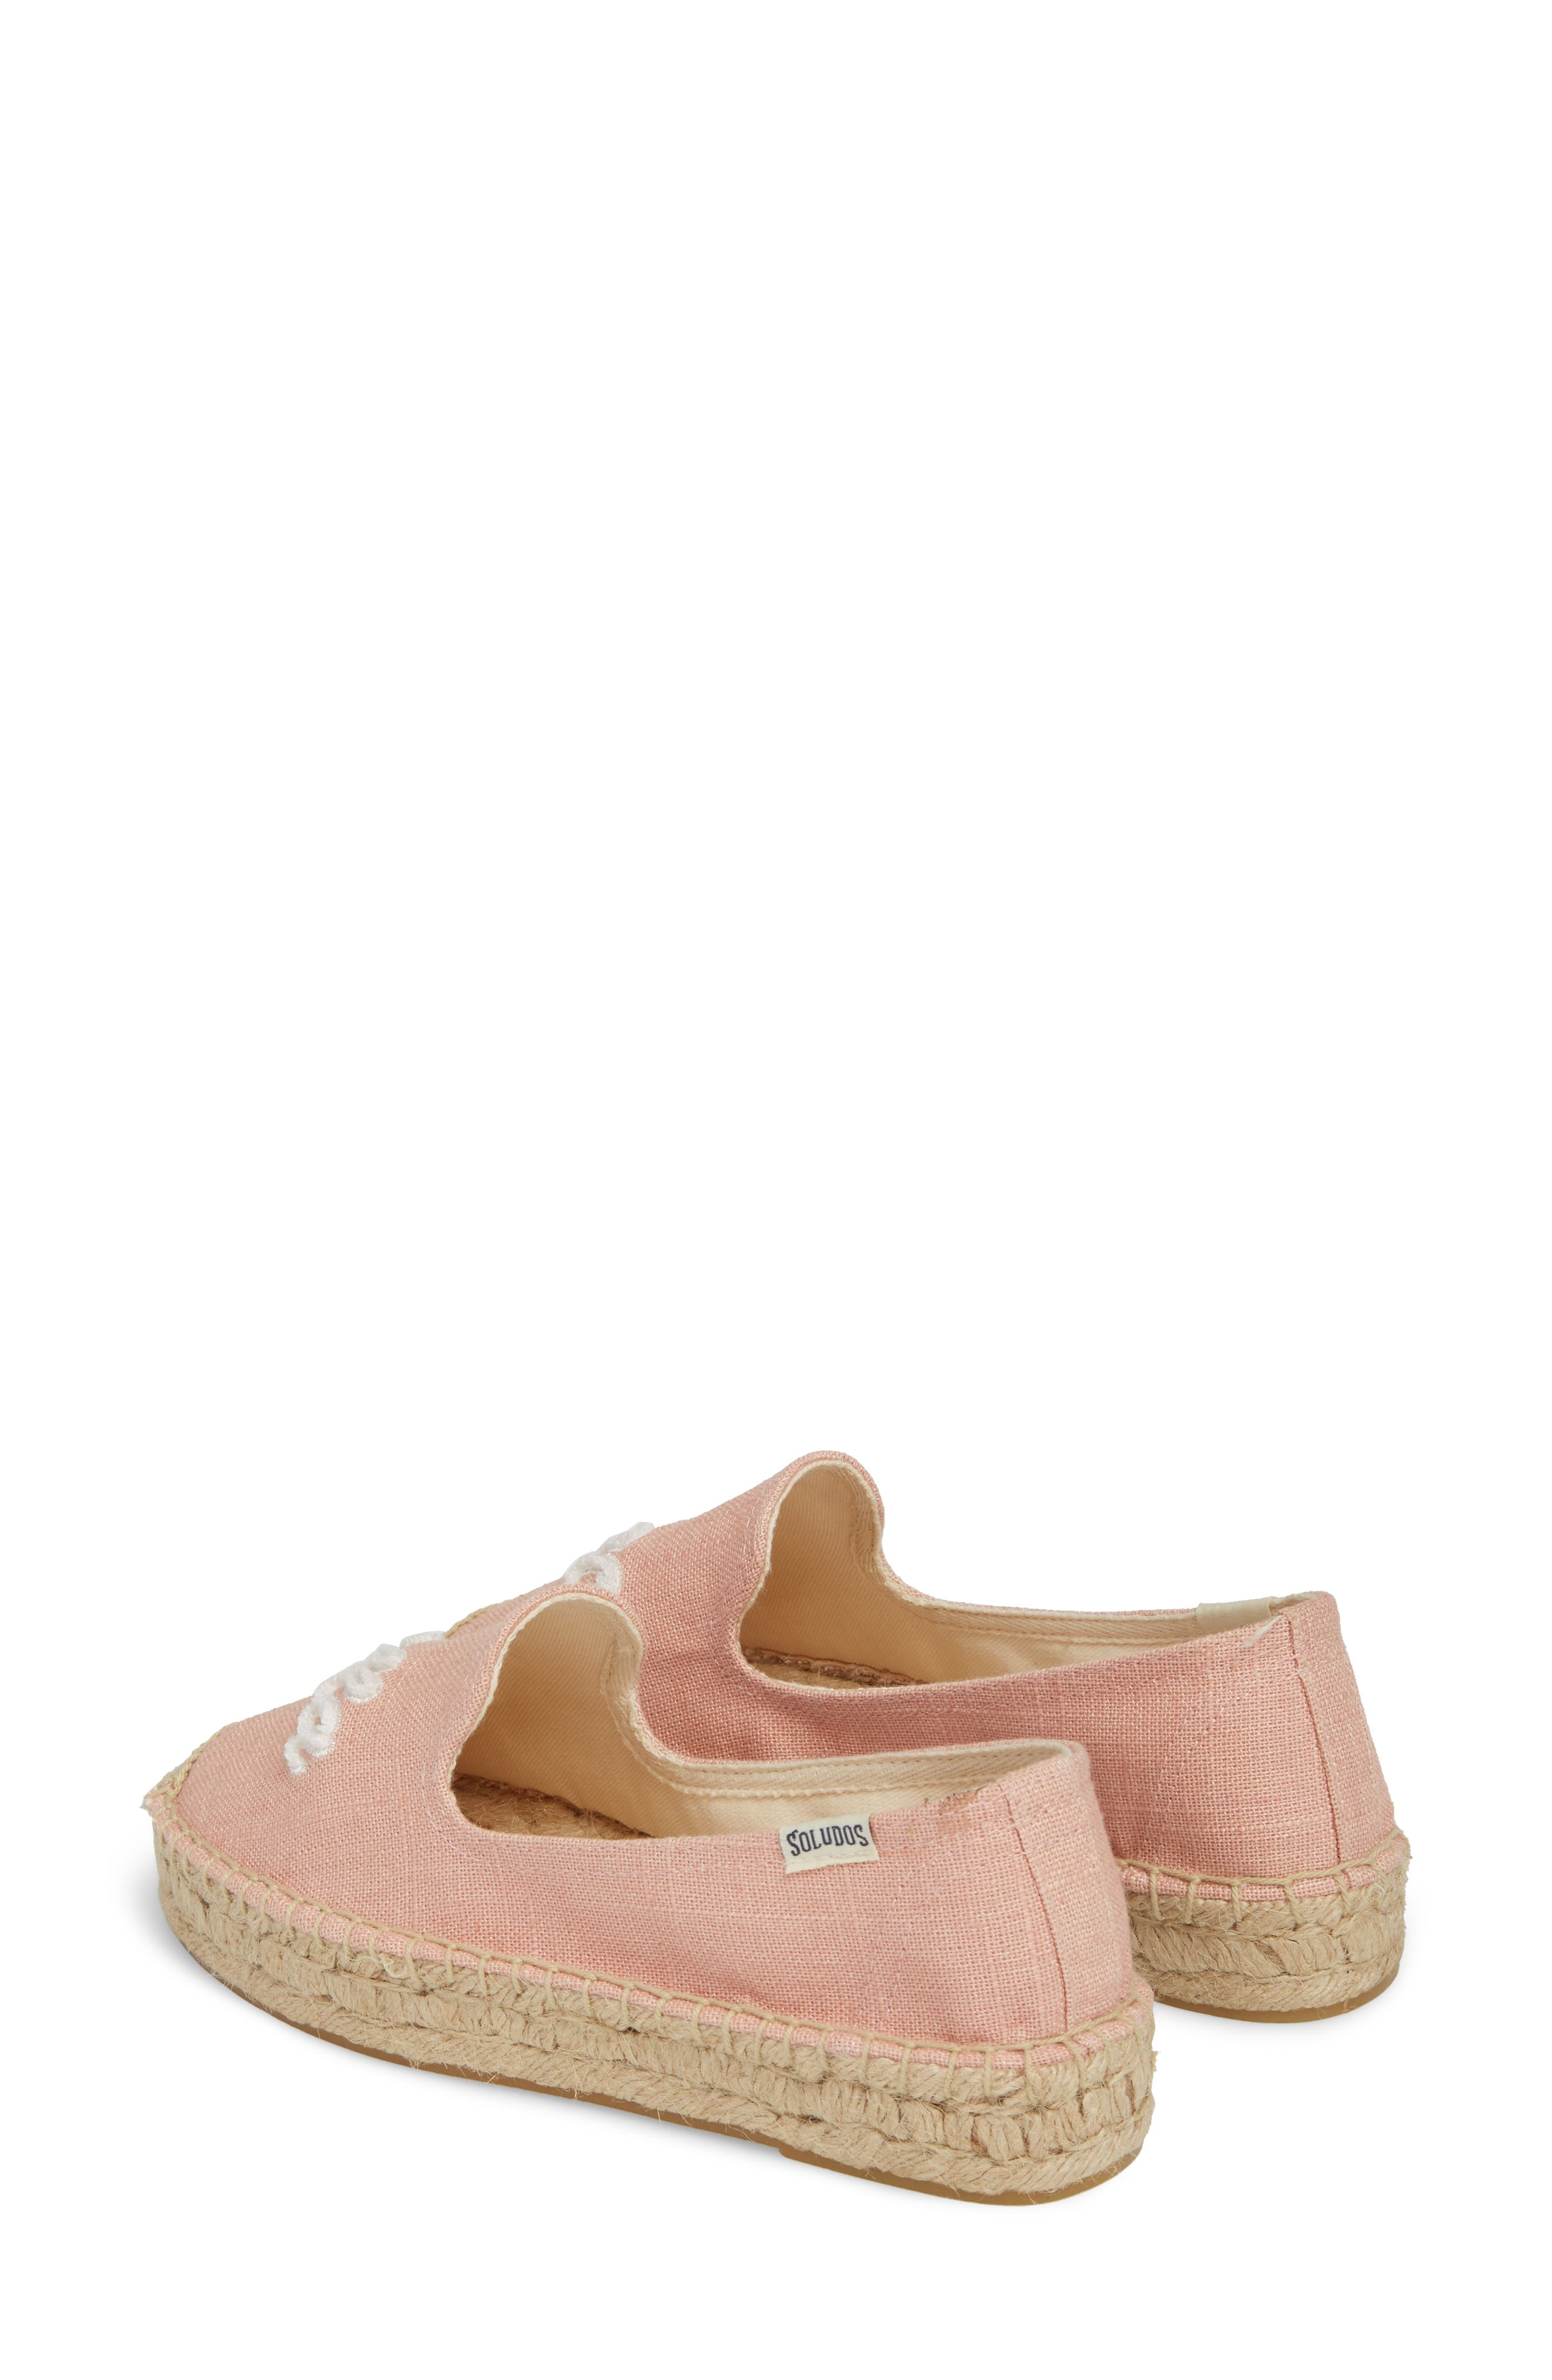 SOLUDOS, Ciao Bella Espadrille Flat, Alternate thumbnail 3, color, DUSTY ROSE FABRIC